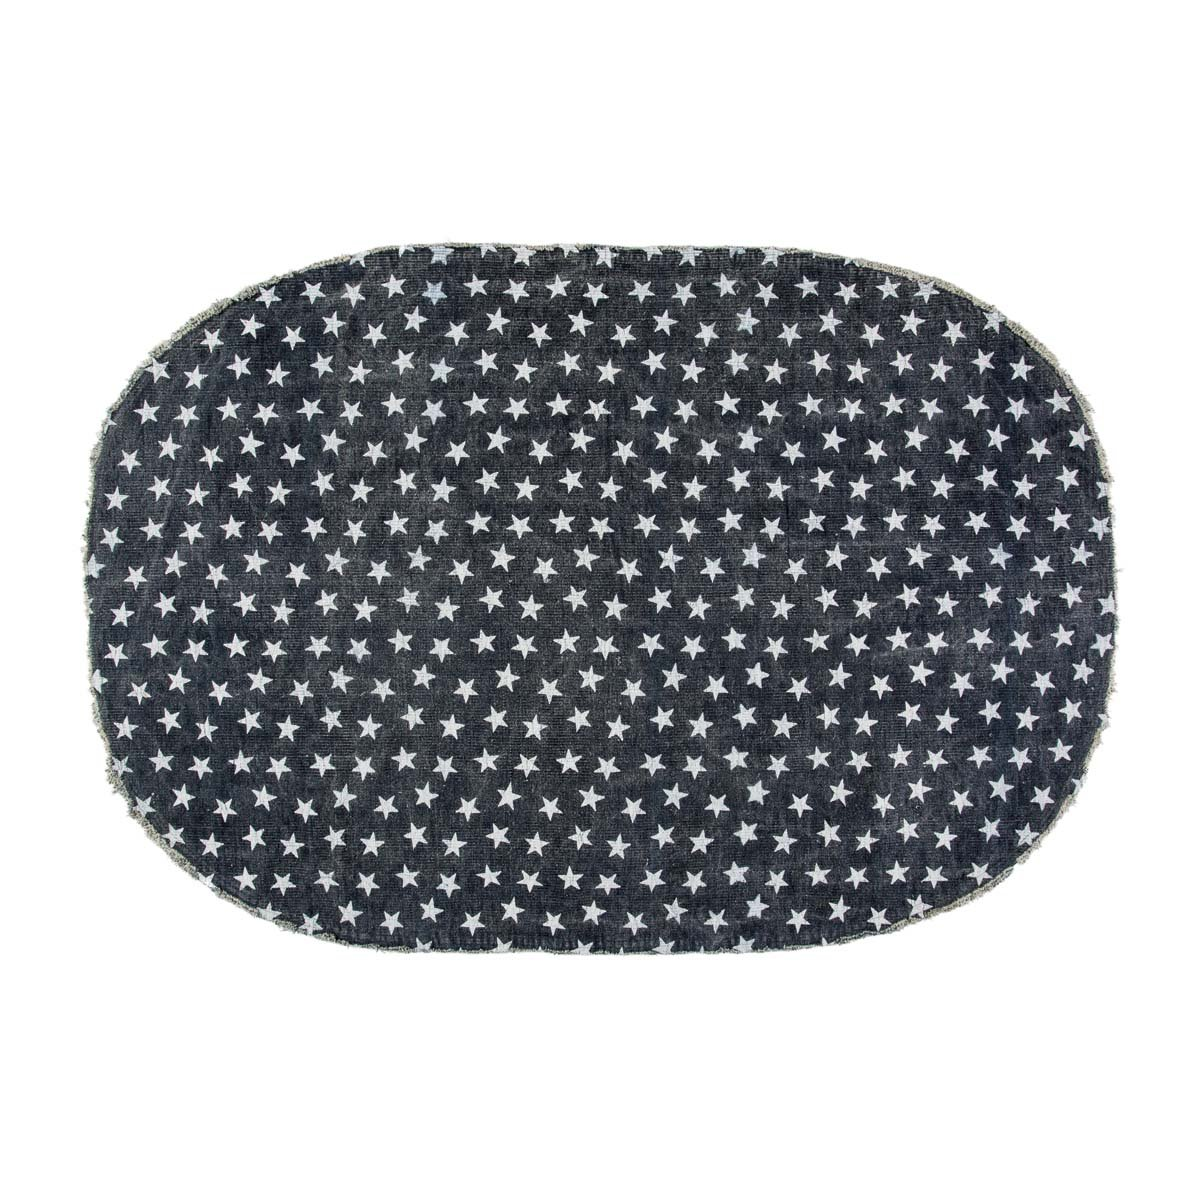 VHC Brands 16064 Multi Star Oval Cotton Rug 5 x 8 Navy